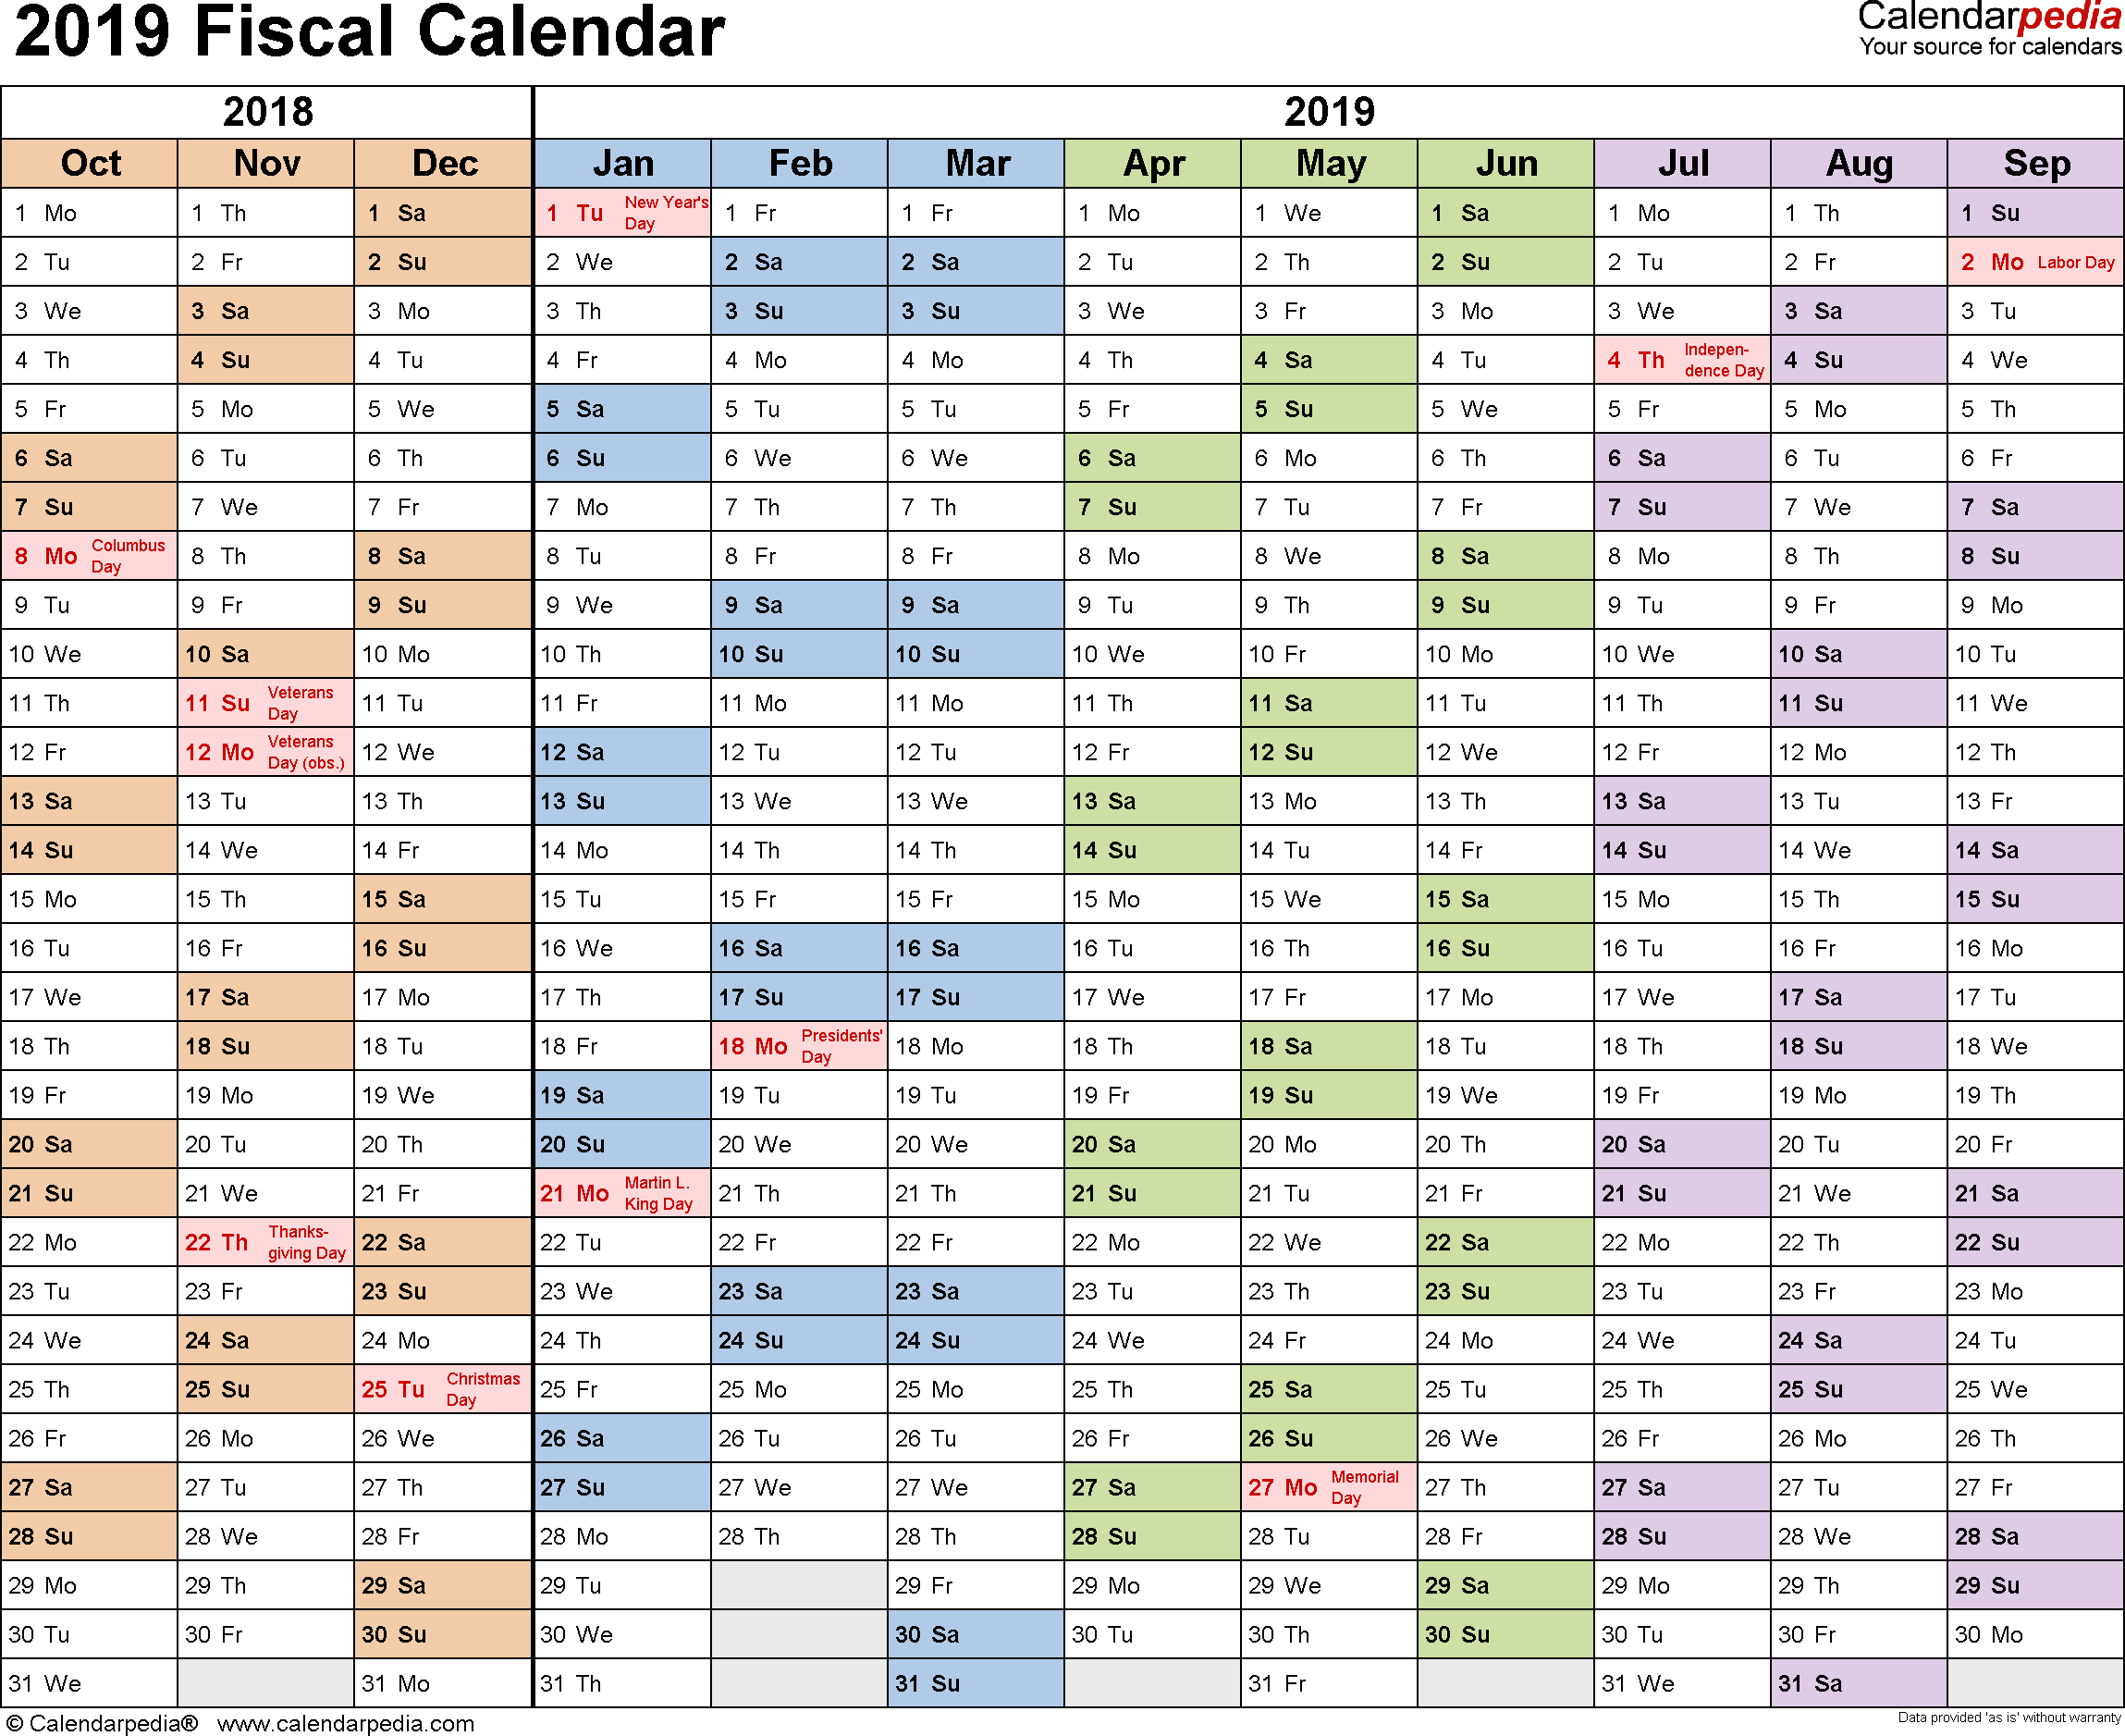 Template 1: Fiscal year calendar 2019 for Word, landscape orientation, months horizontally, 1 page